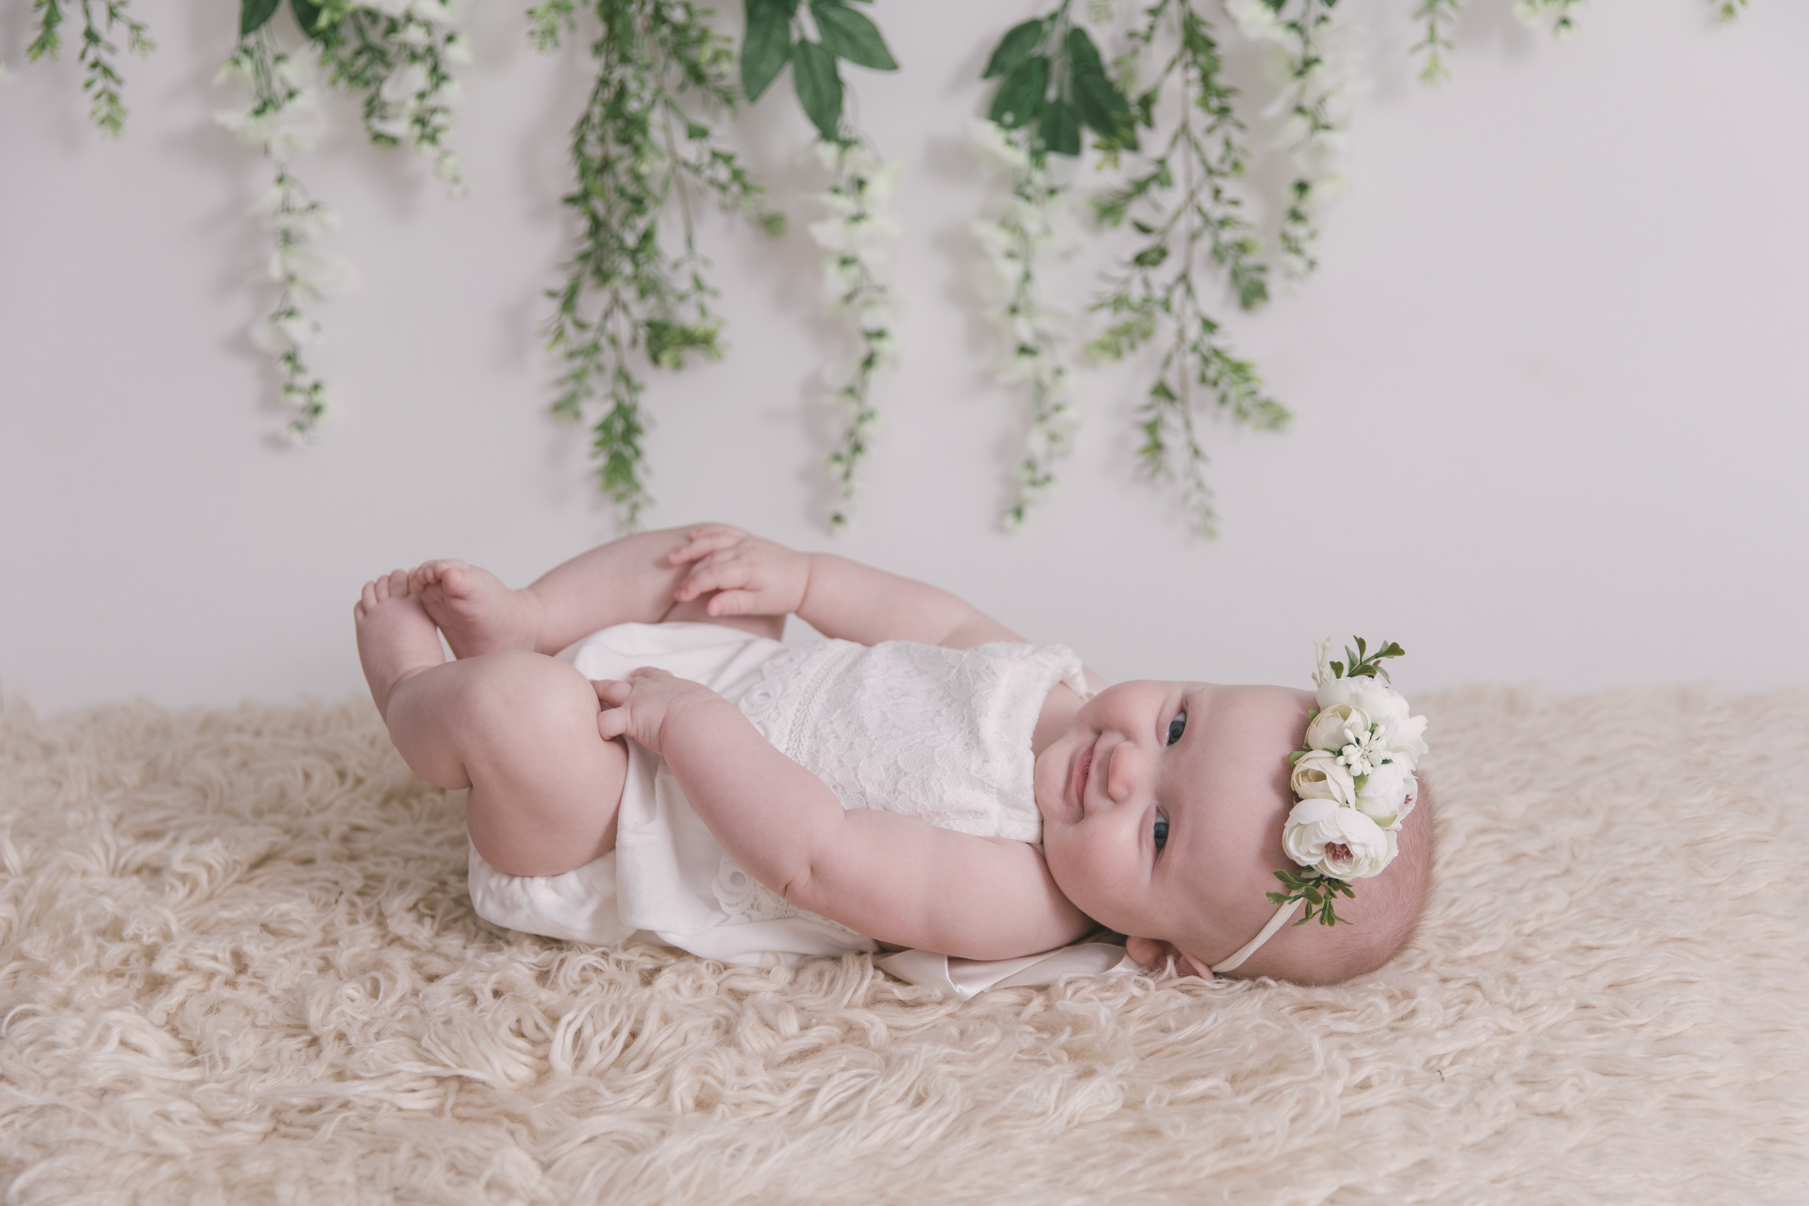 studio-milestone-session-three-six-nine-sessions-first-year-sessions-by-christie-leigh-photo-maternity-and-newborn-photographer-3.JPG